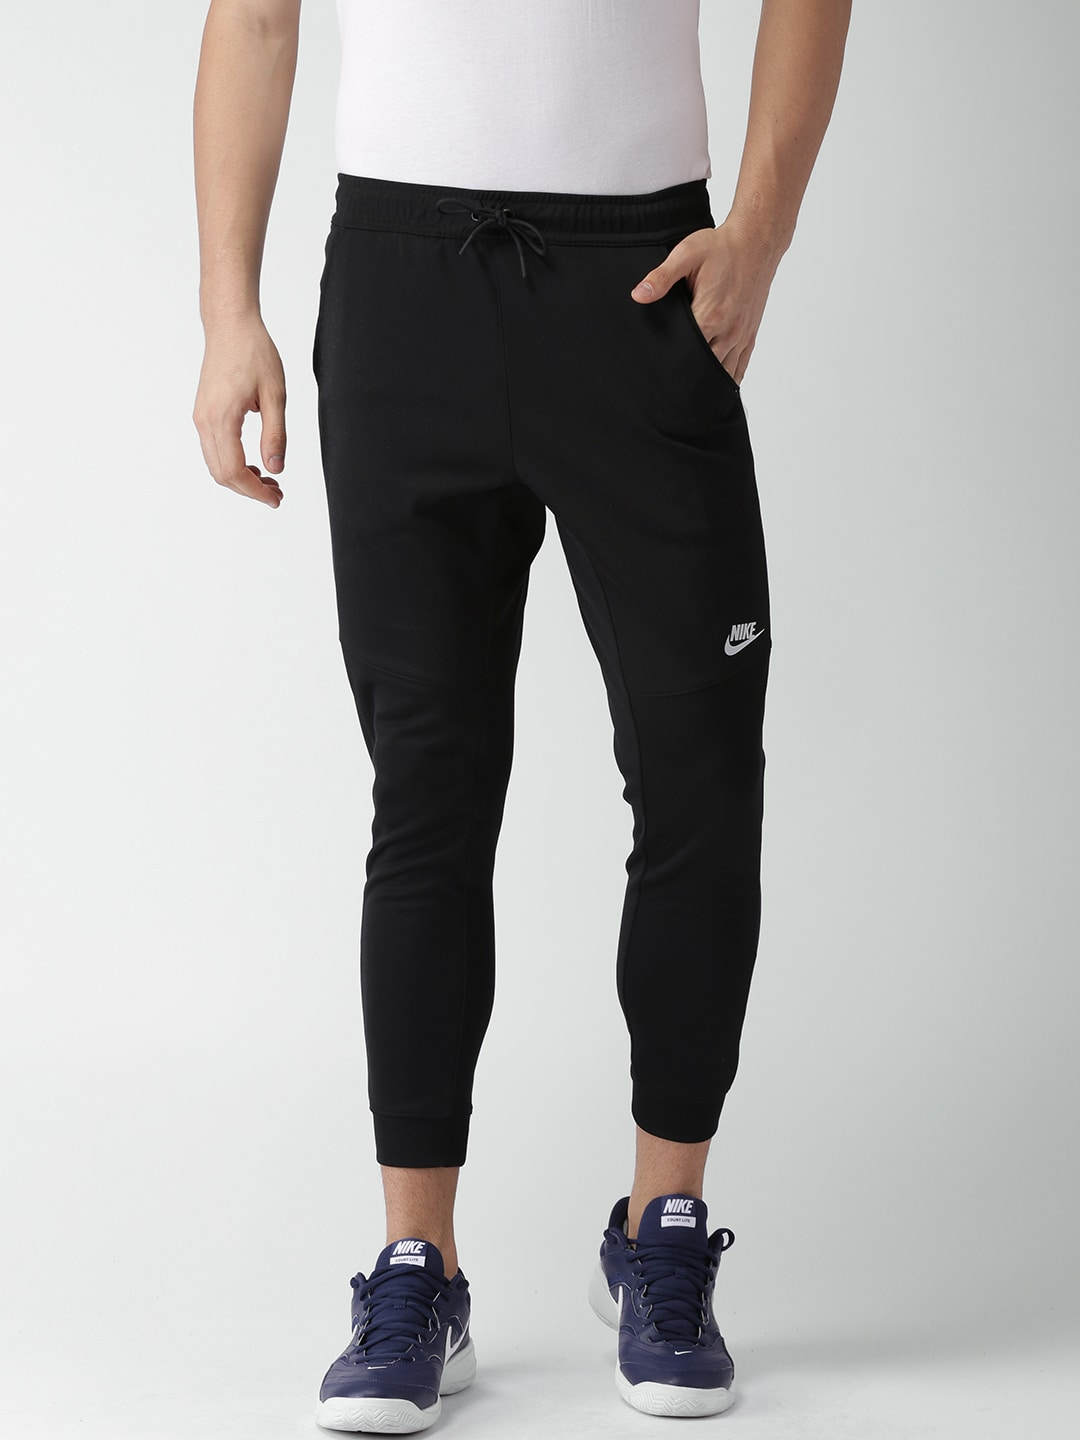 6b55037792d0 Nike Joggers - Buy Nike Joggers online in India